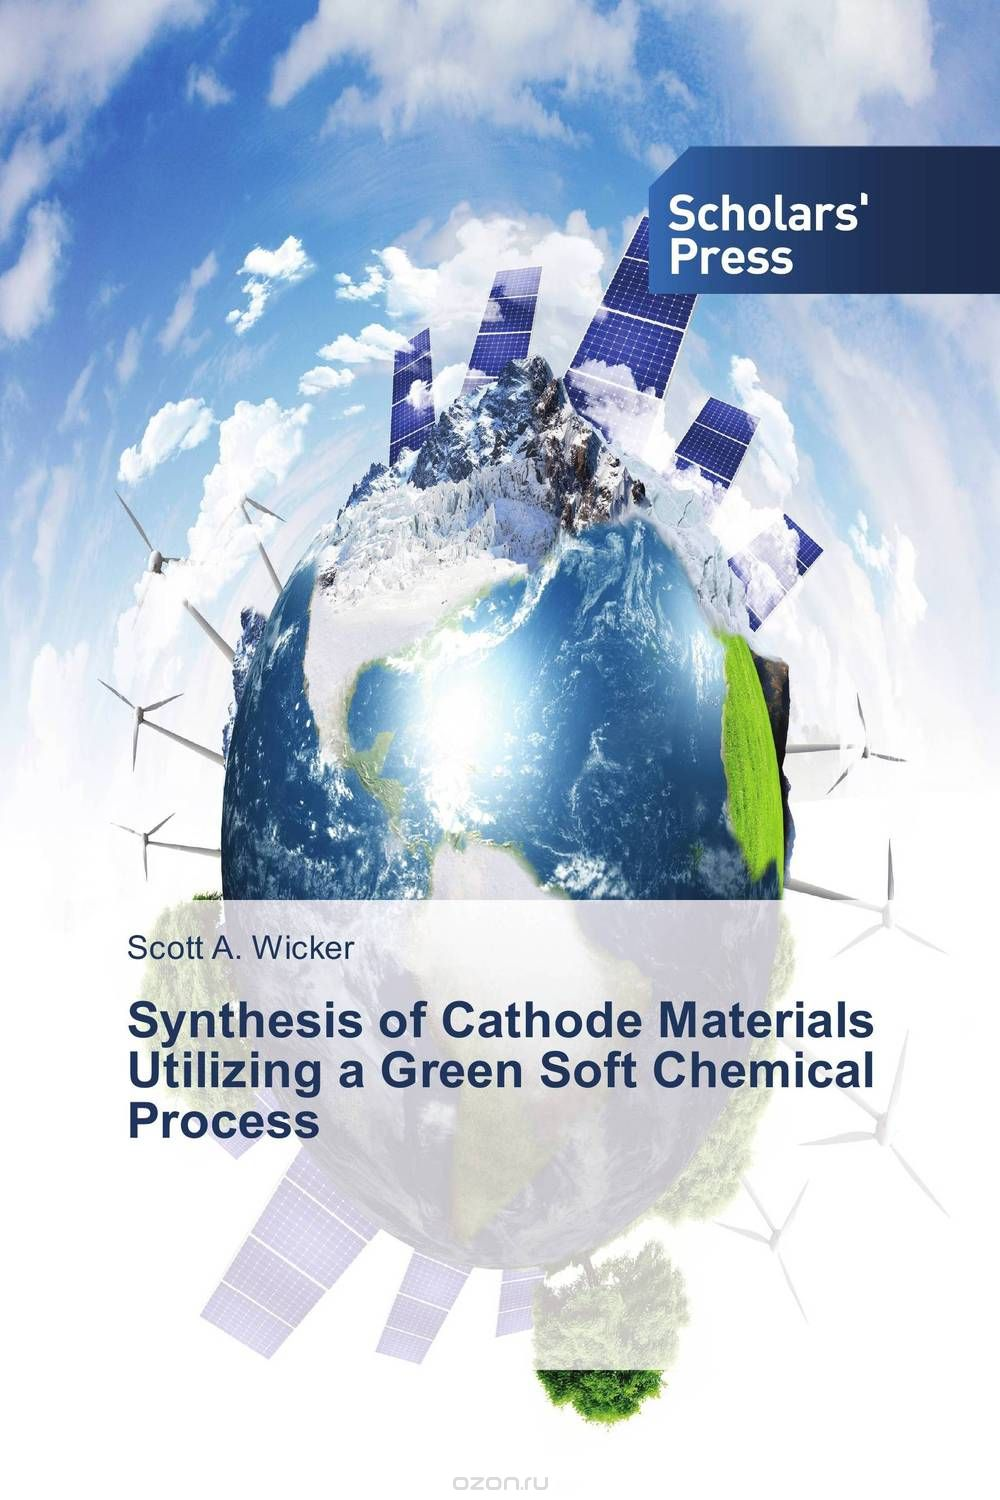 Synthesis of Cathode Materials Utilizing a Green Soft Chemical Process